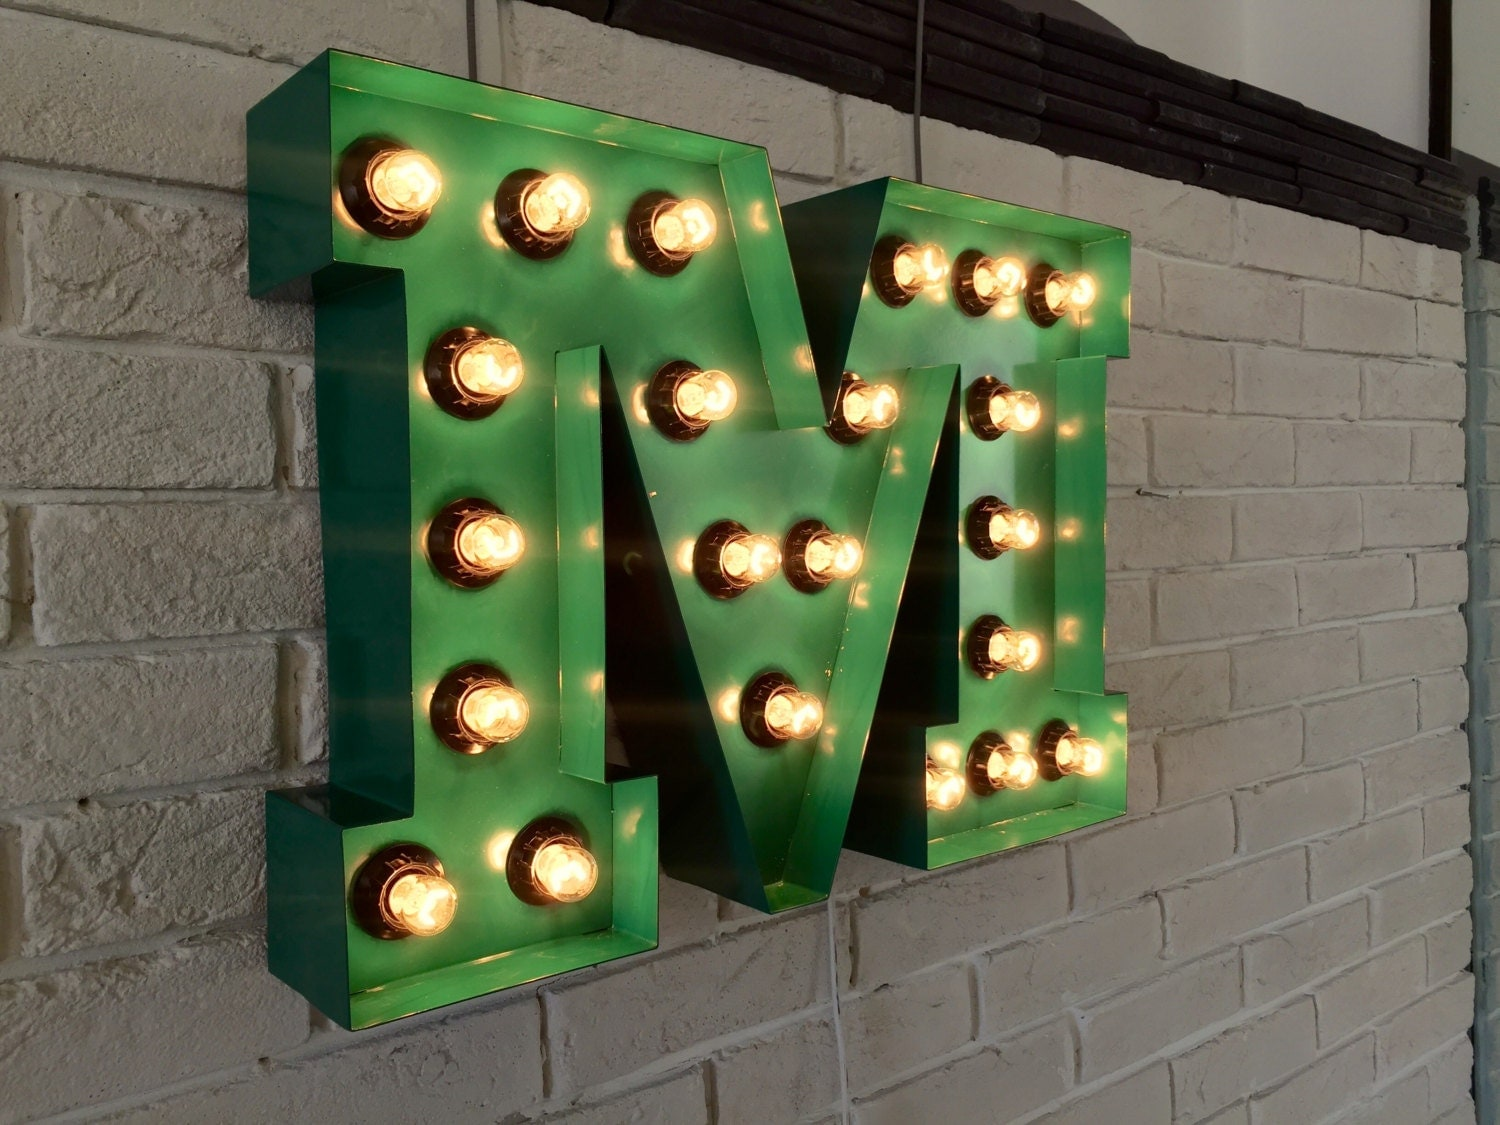 light up wall letters vintage light bulb letter wall light light up letter m sign 23444 | il fullxfull.938043526 pwd8